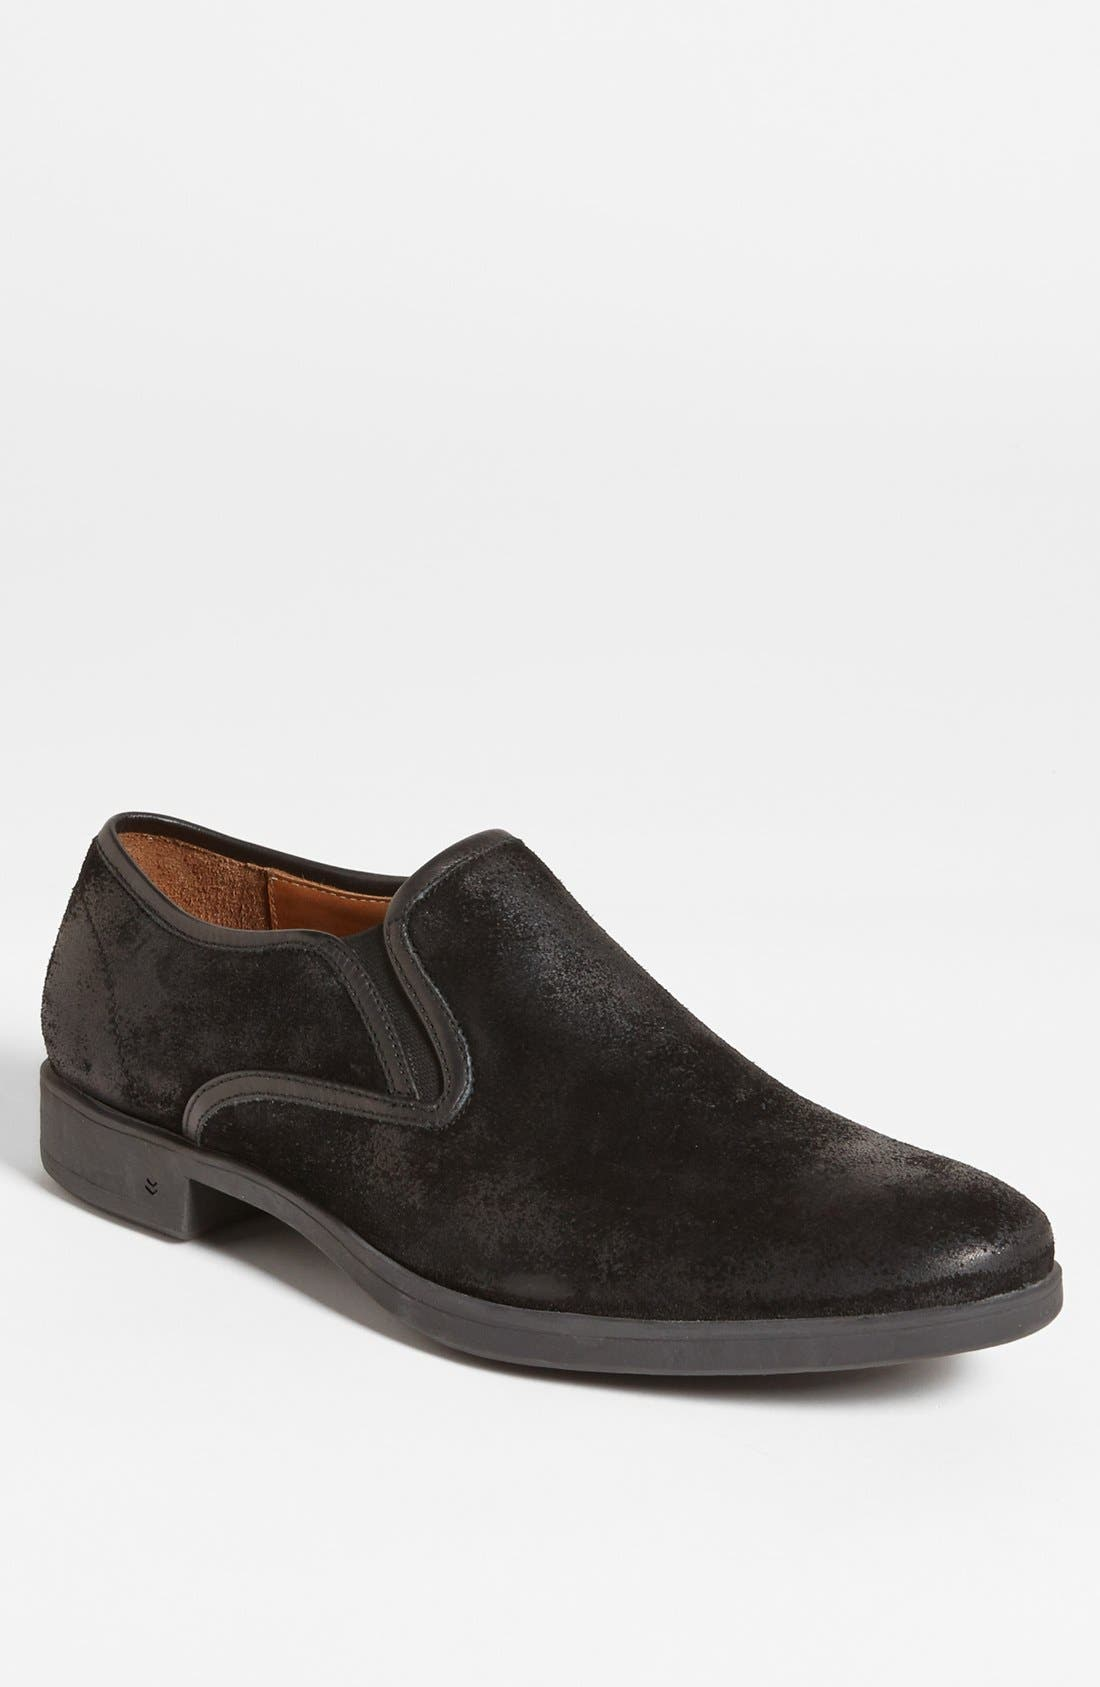 Main Image - John Varvatos Collection 'Dylan' Venetian Loafer